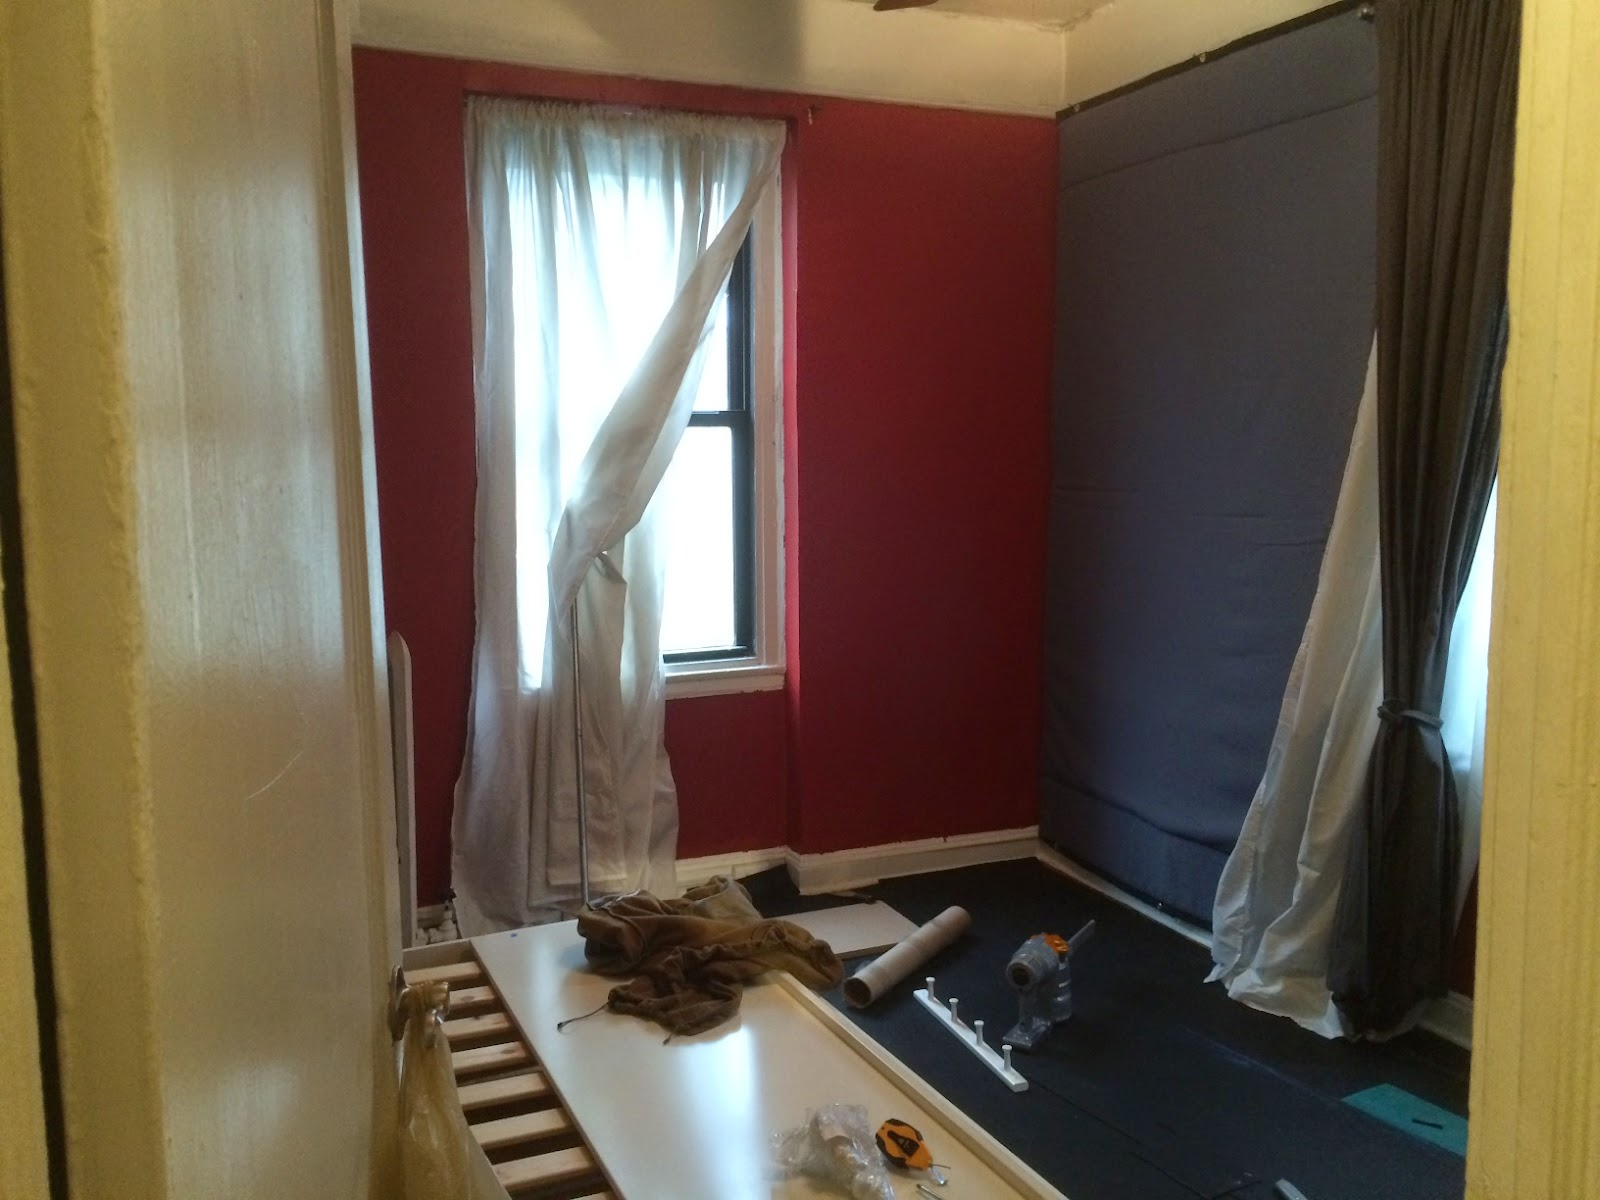 Shimmy 39 s music blog soundproofing an apartment room sort - How to soundproof a room in an apartment ...